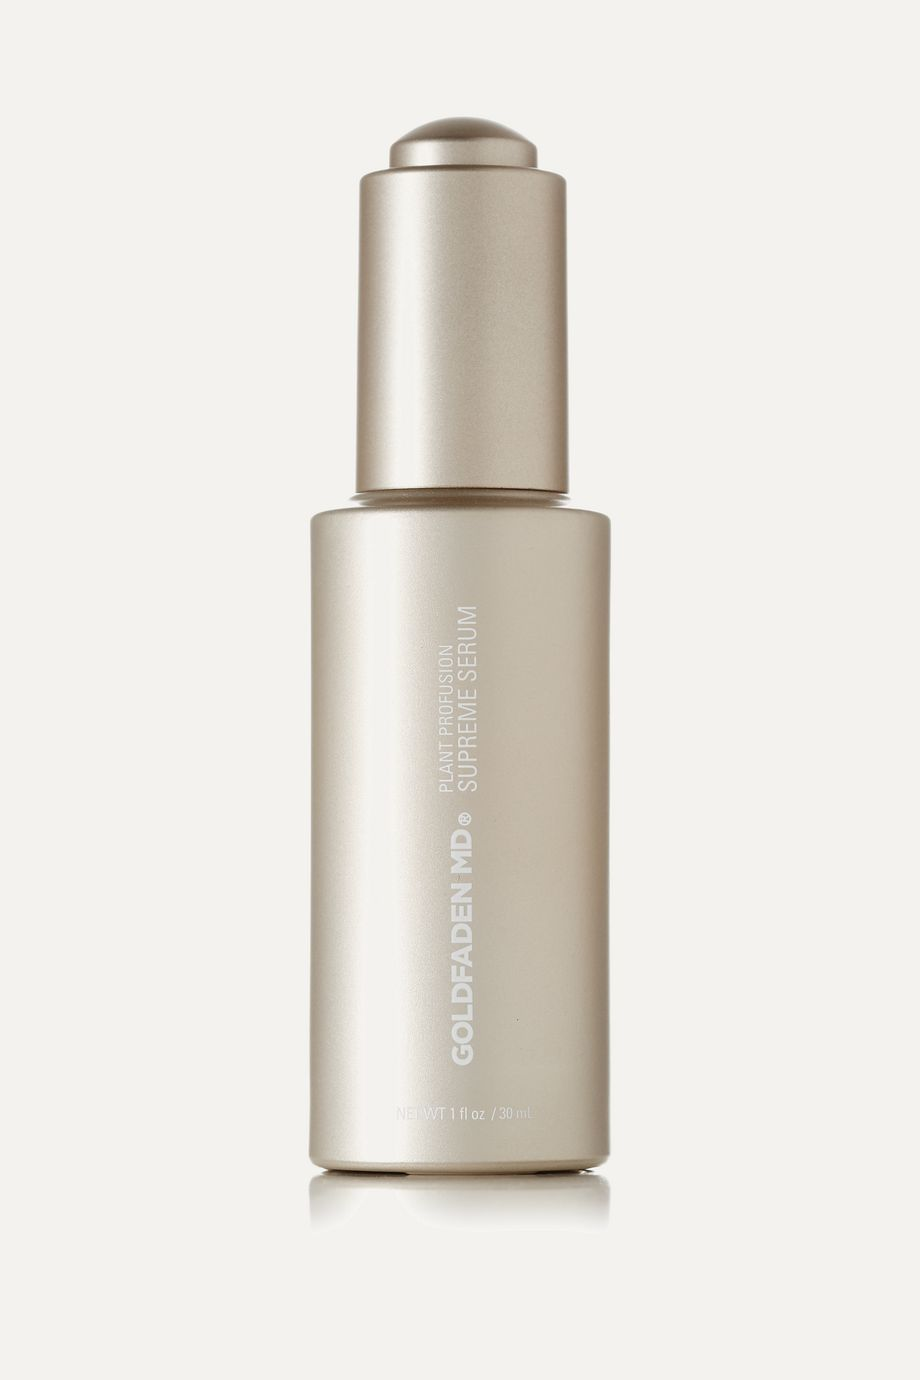 Goldfaden MD Plant Profusion Supreme Serum, 30ml